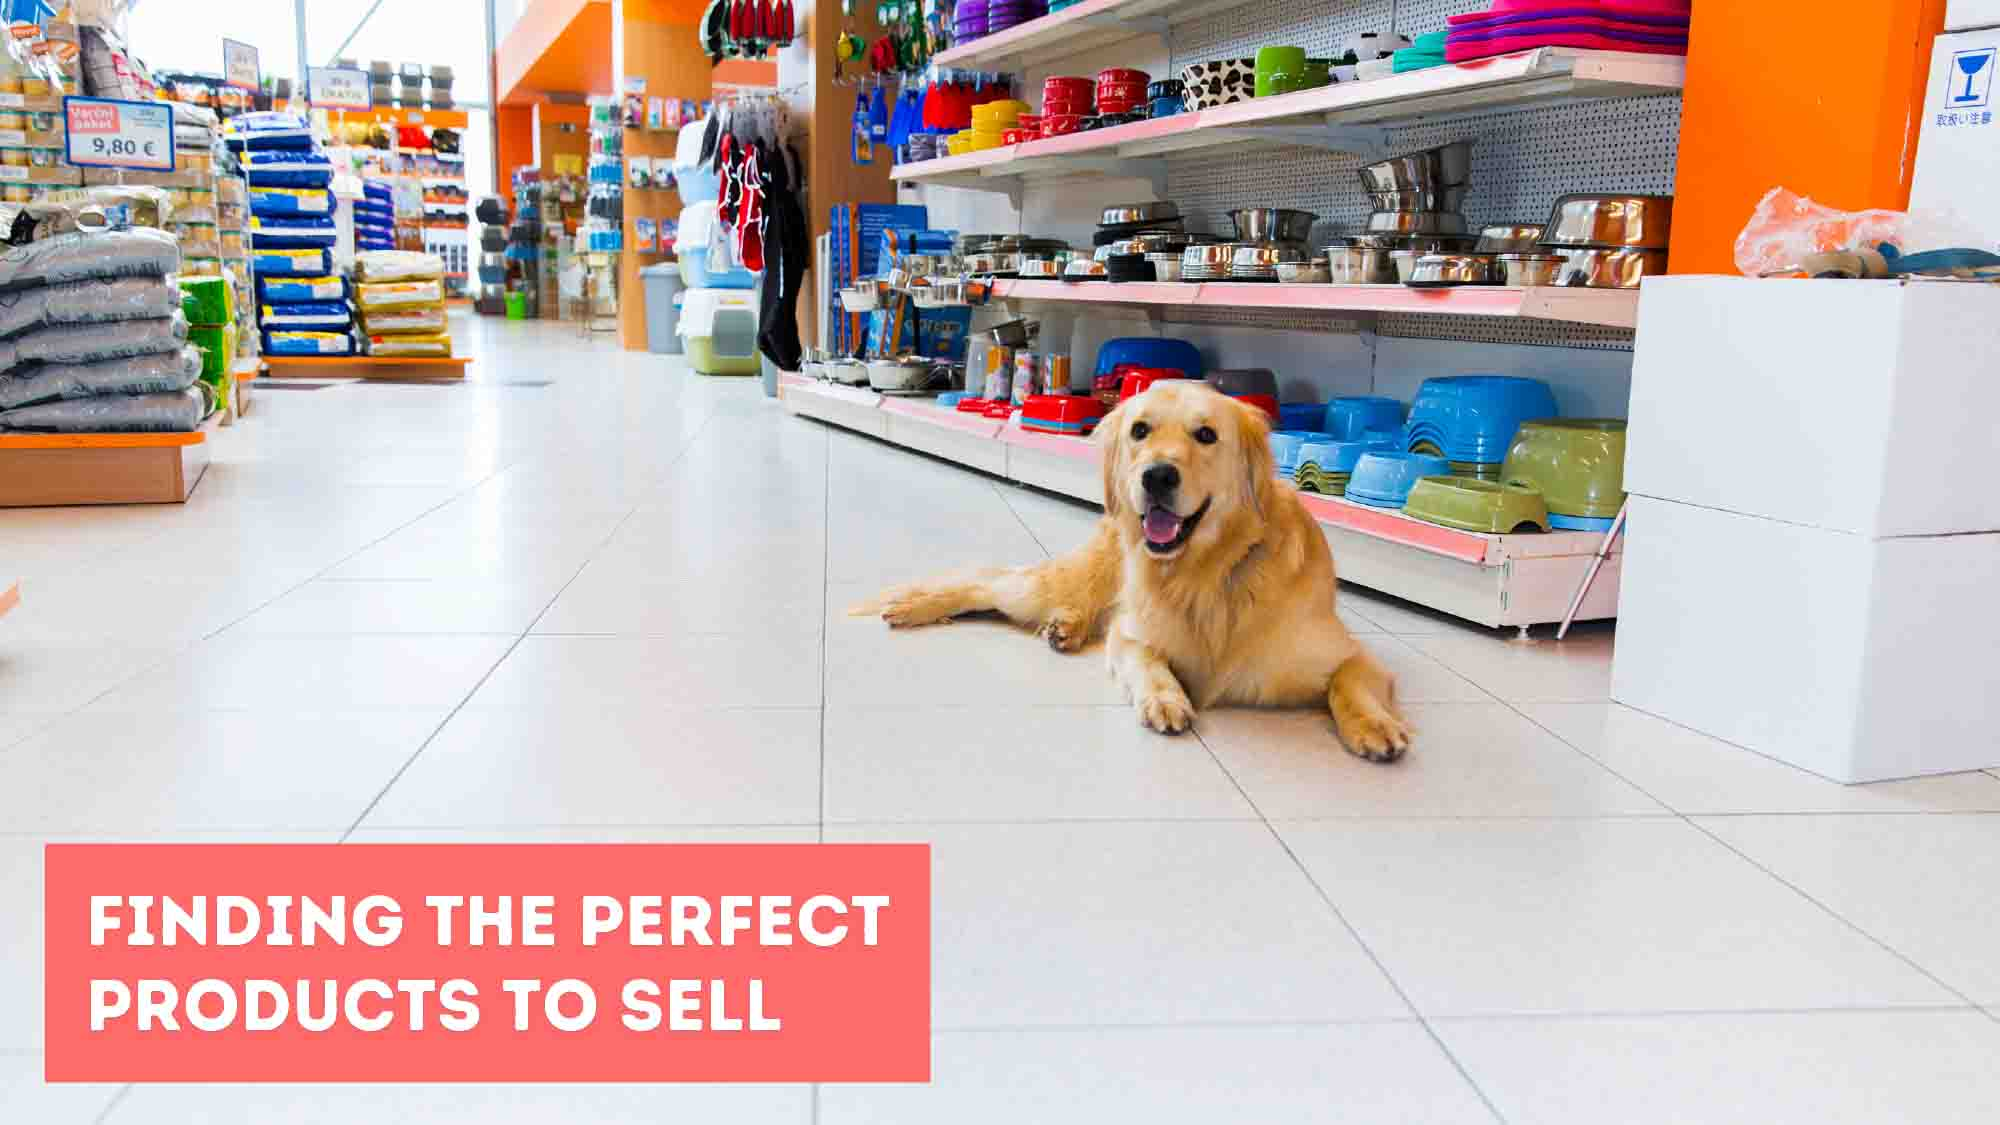 Finding The Perfect Products To Sell - Dropship USA